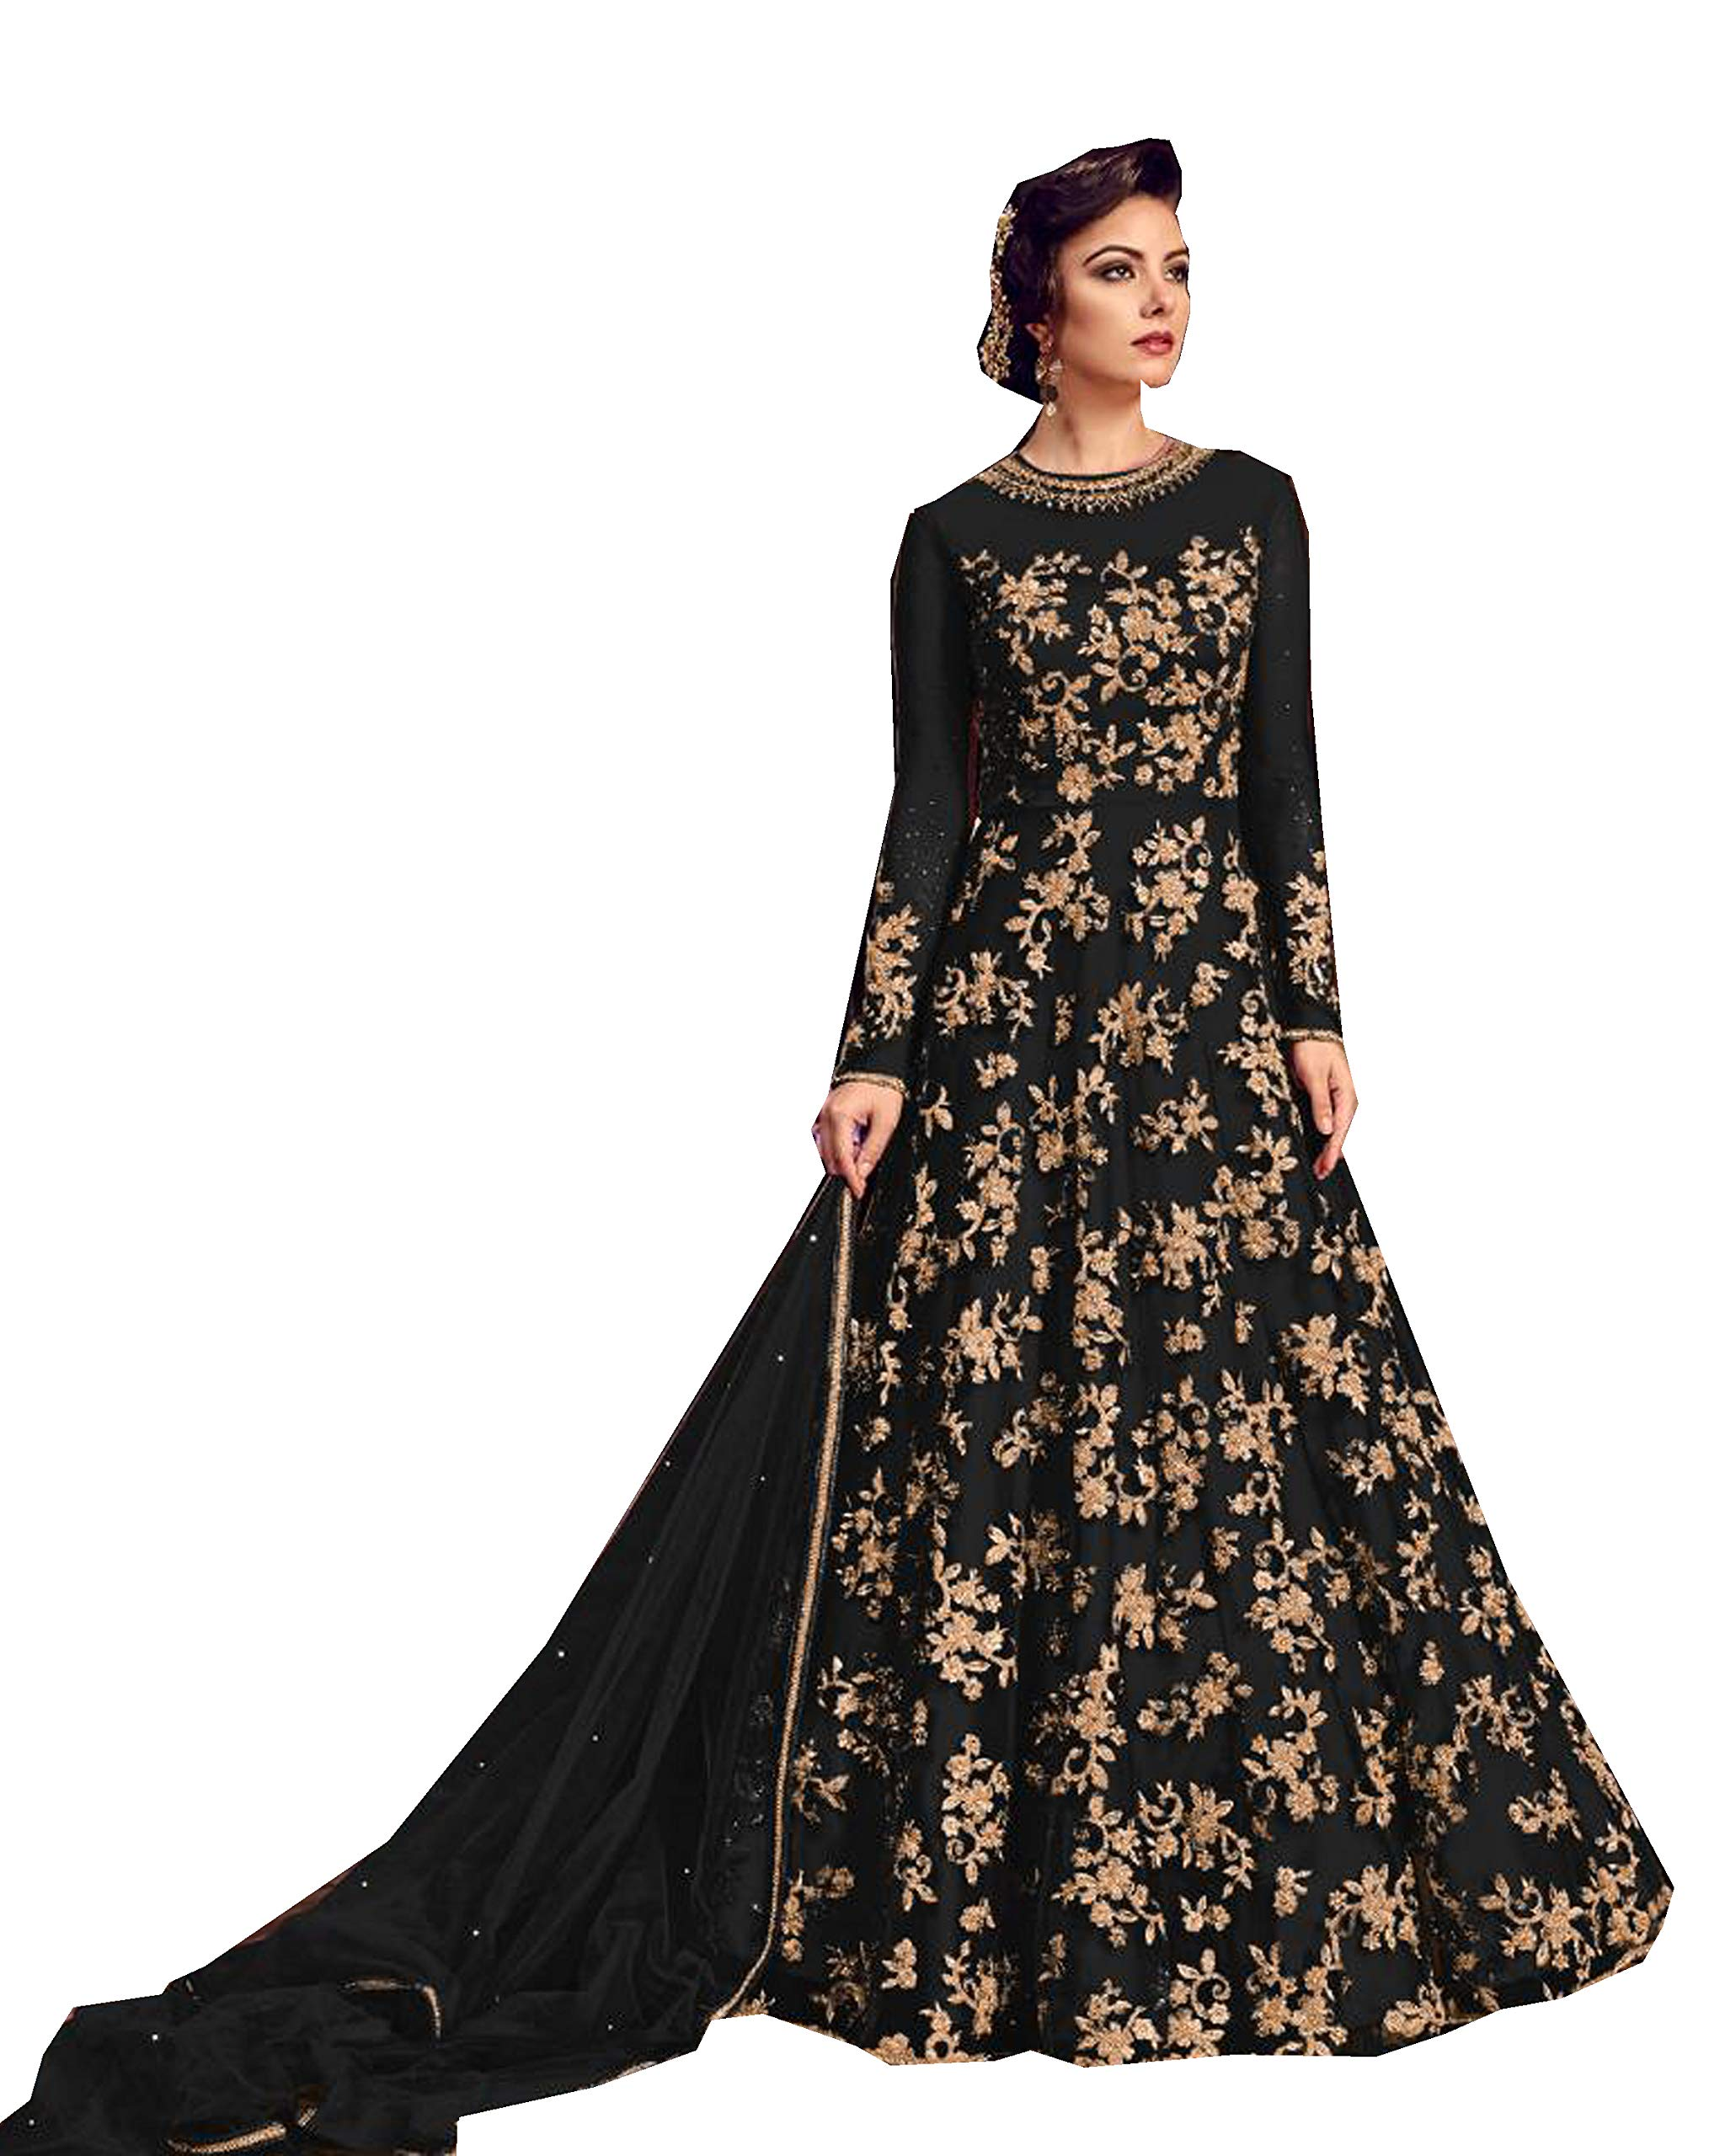 Delisa Indian/Pakistani Bollywood Party Wear Long Anarkali Gown for Womens Razzi violate N (Black, X-LARGE-44)